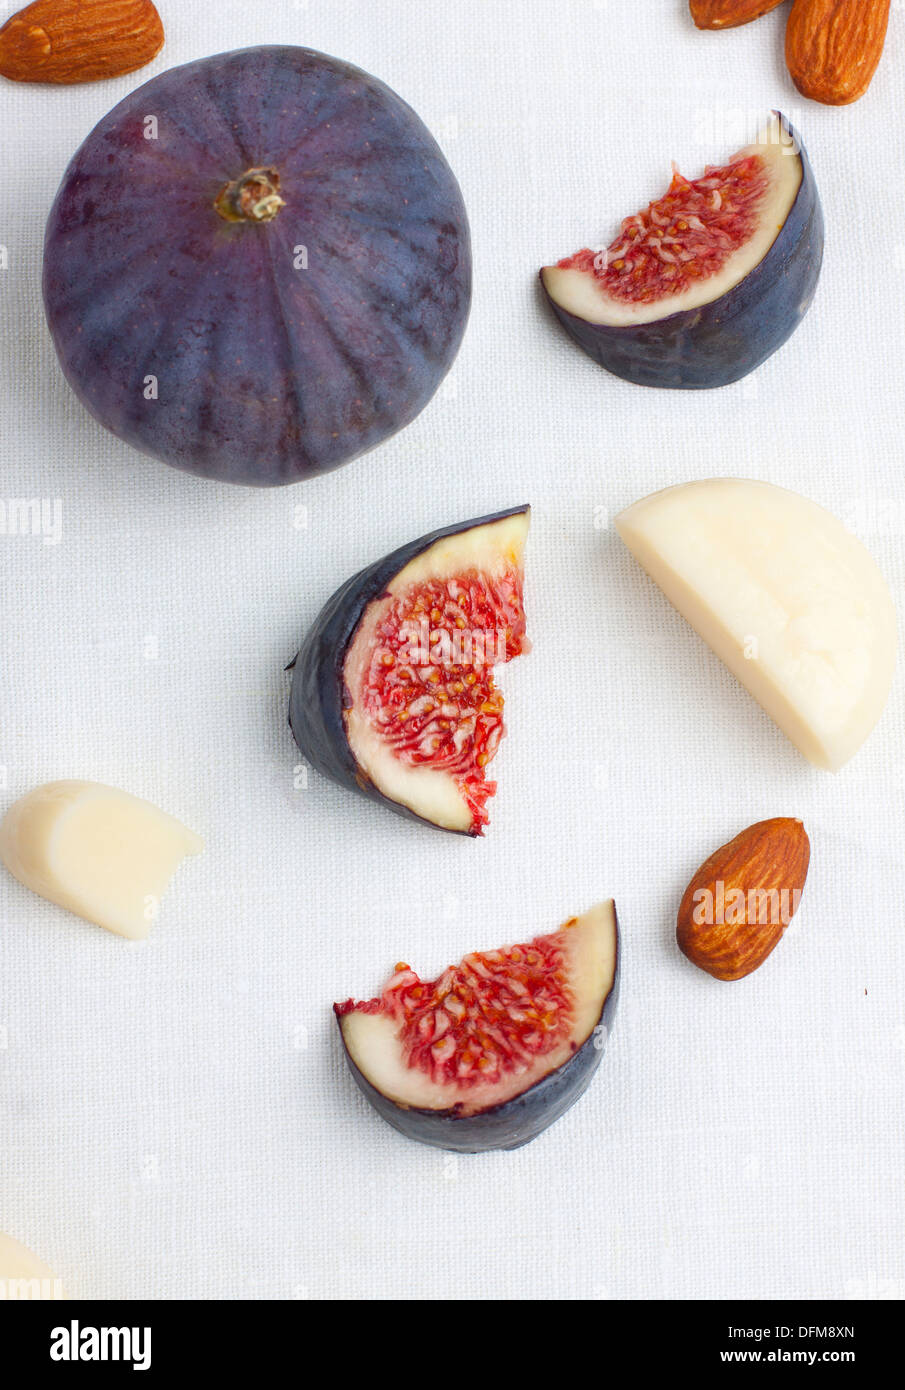 Fresh cut figs with slices of cheese and some nuts - Stock Image